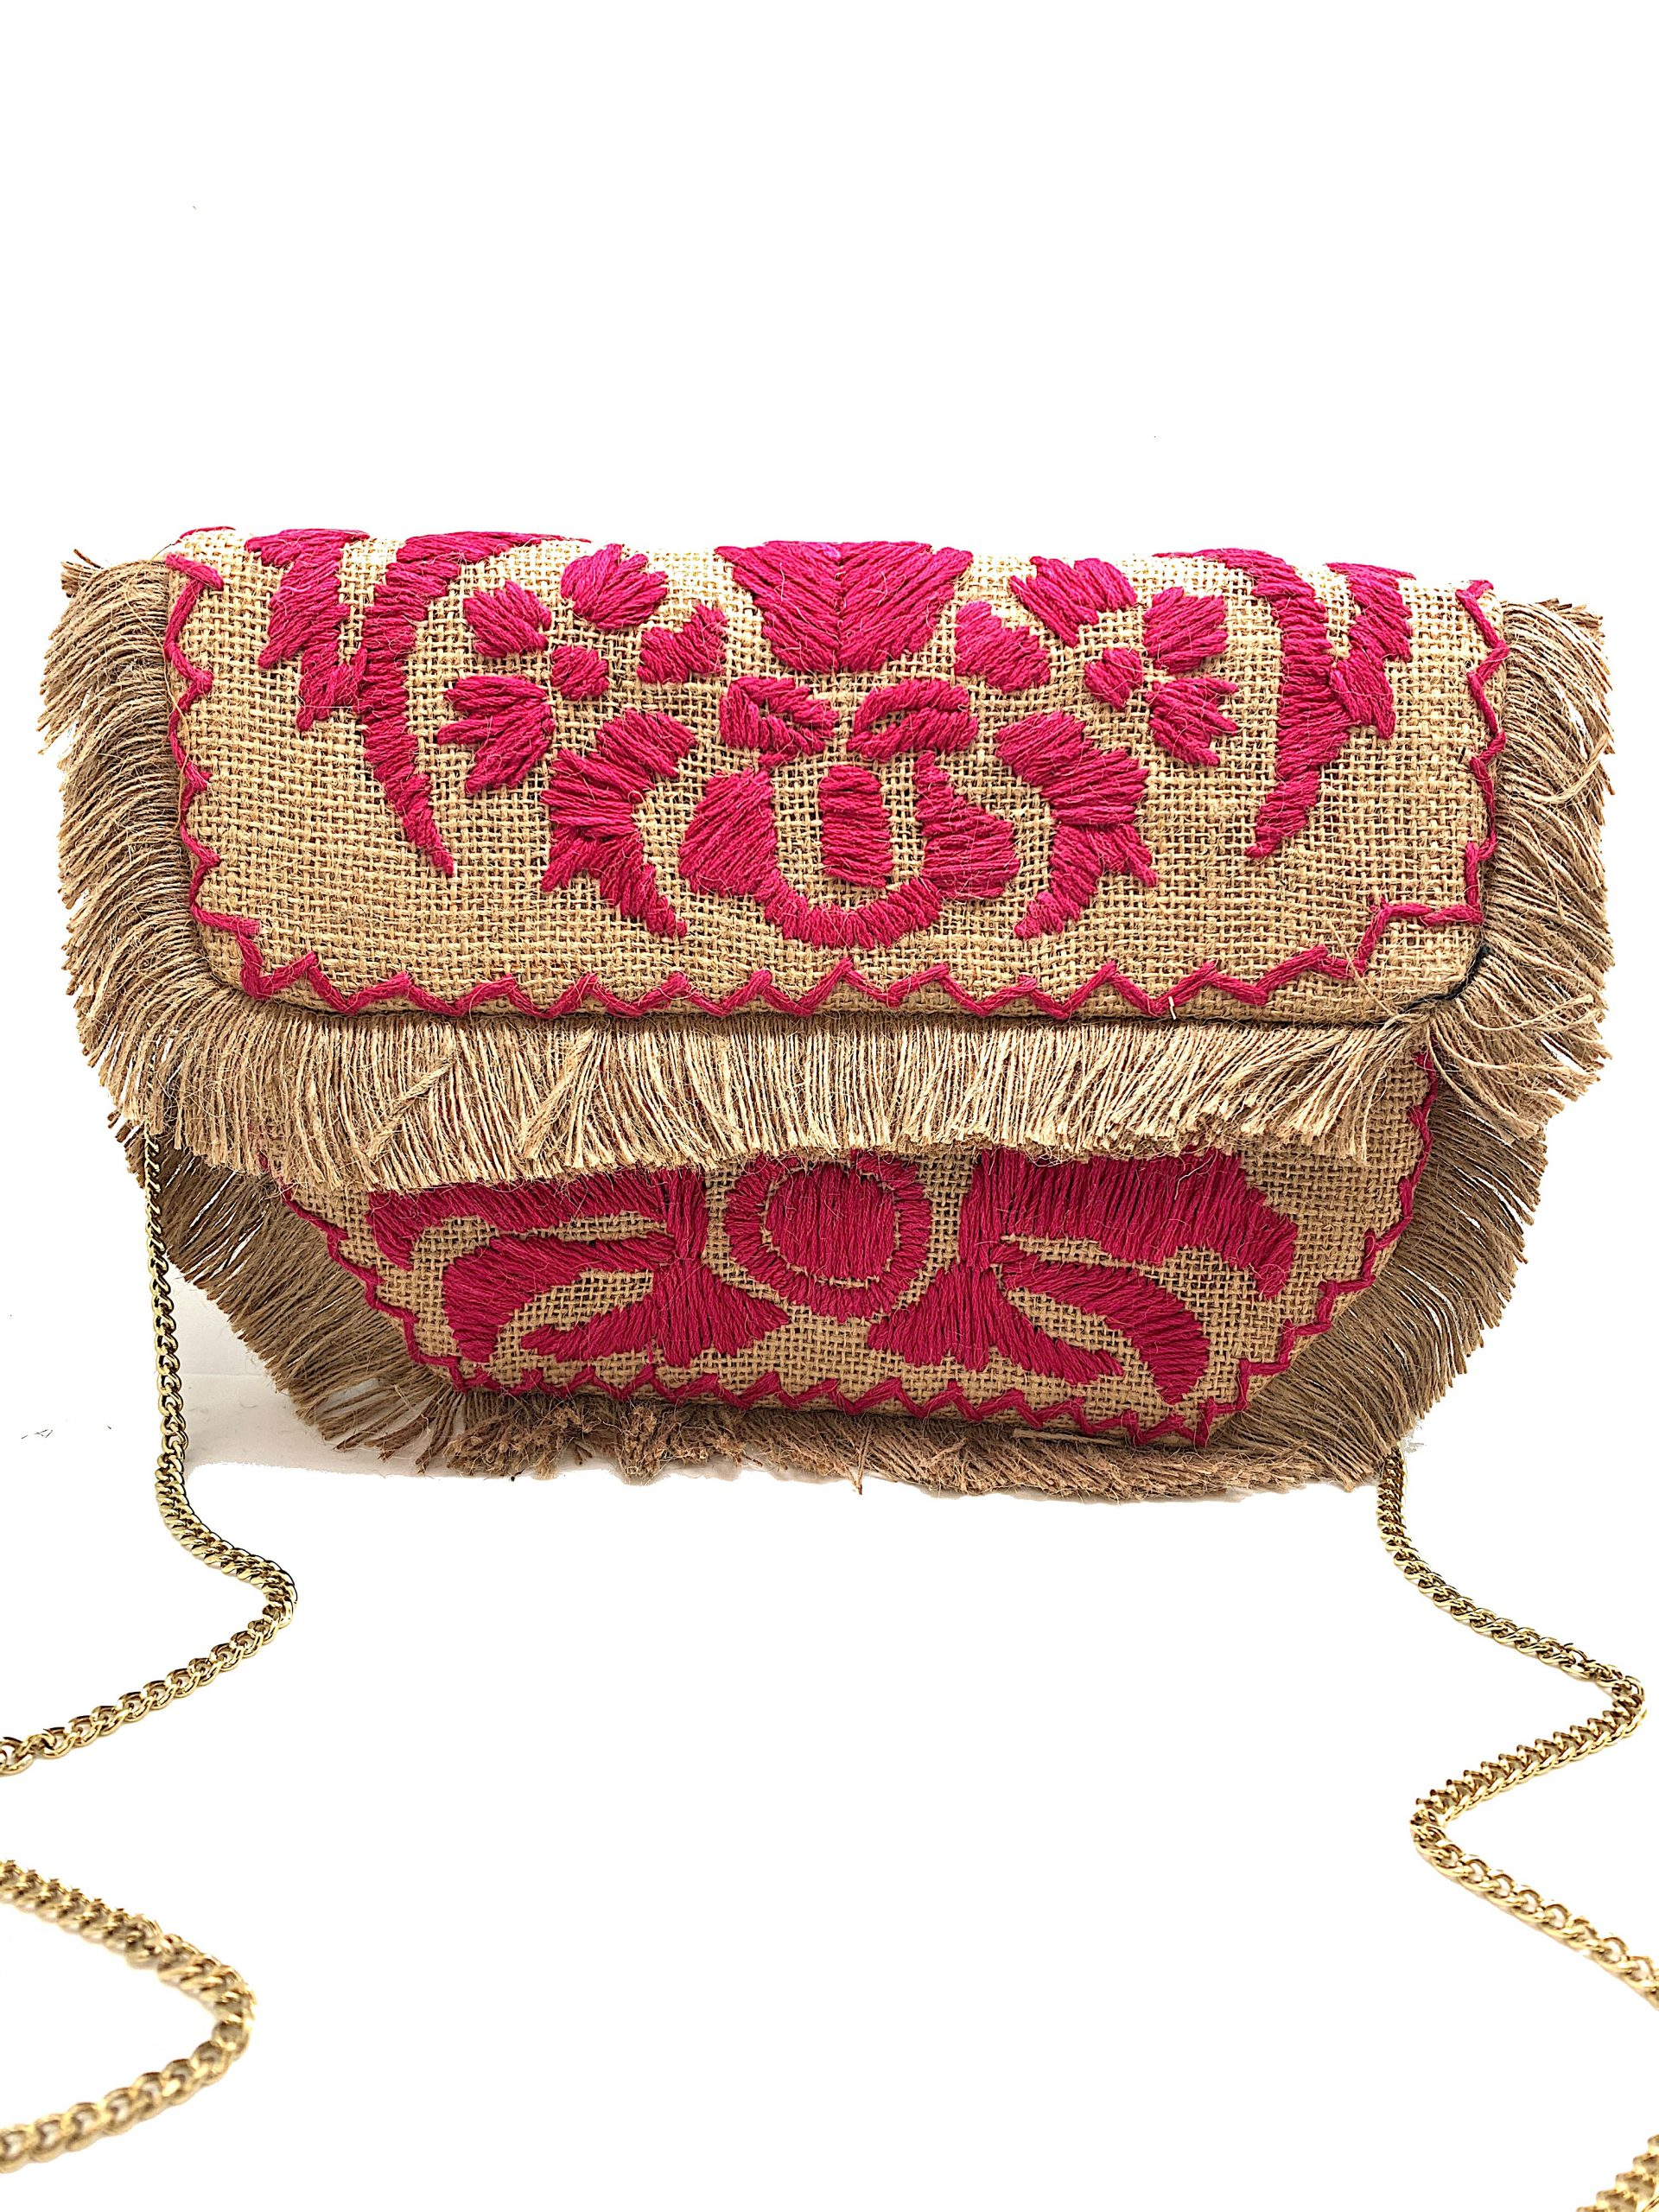 FUCHSIA EMBROIDERED BURLAP CLUTCH